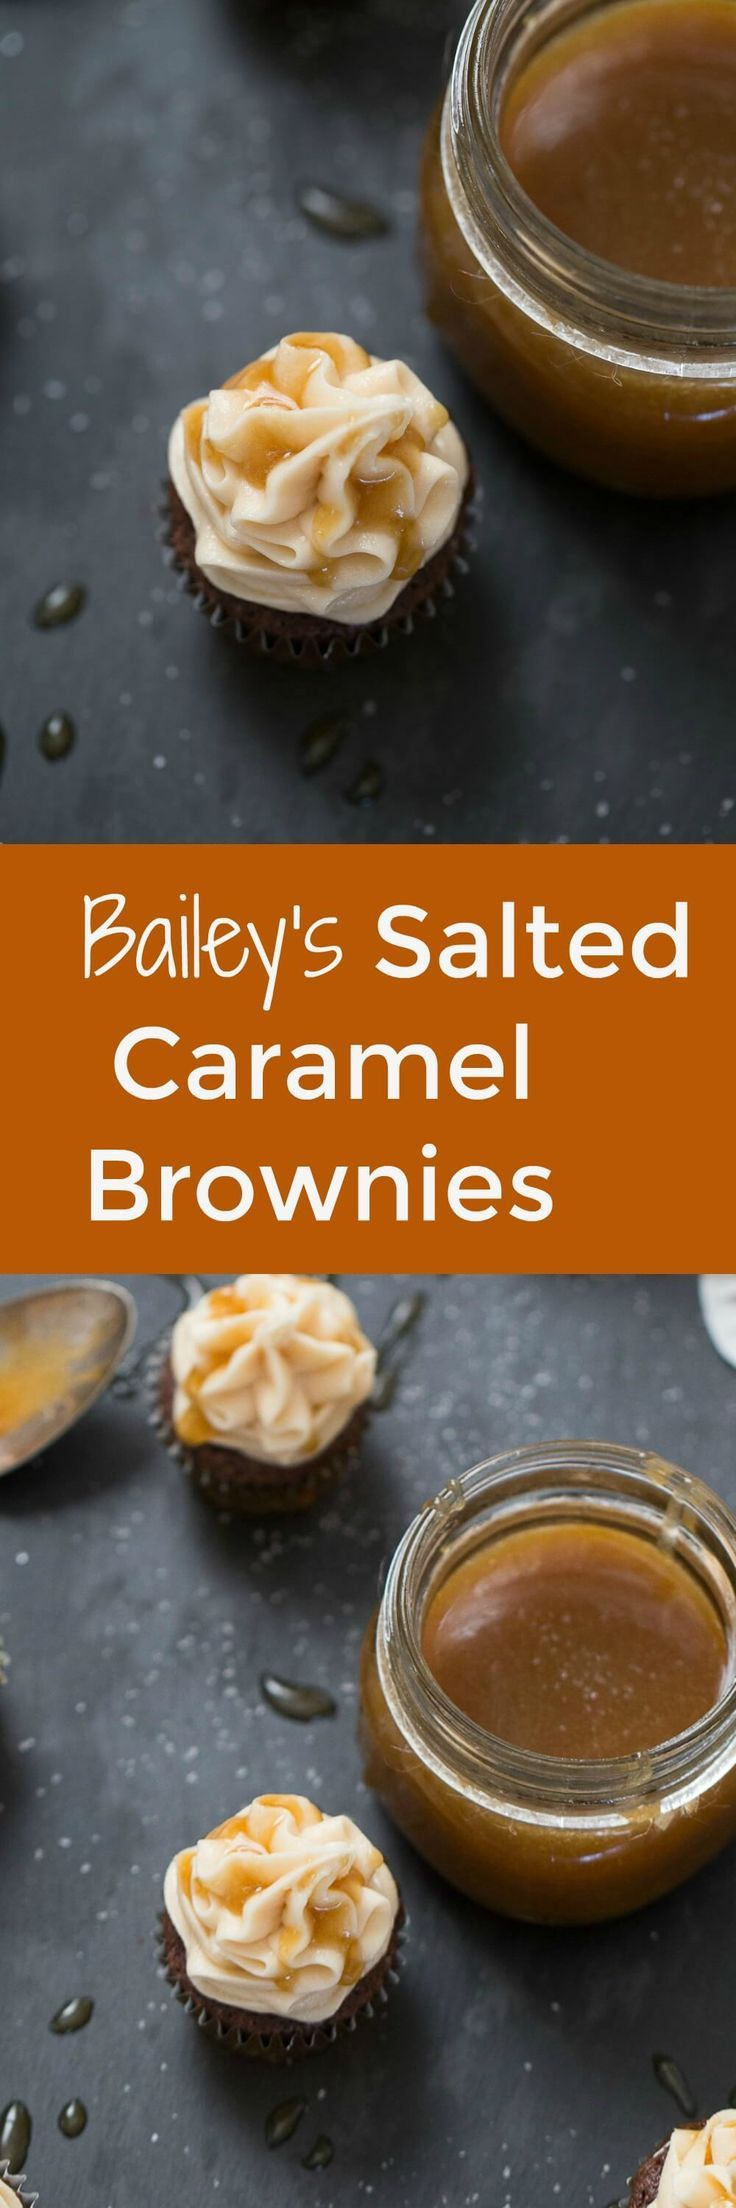 Salted Caramel Brownies are fudgy and filled with a caramel surprise!  The Irish cream infused buttercream is absolutely dreamy! This is a must-try dessert! lemonsforlulu.com via @Lemonsforlulu